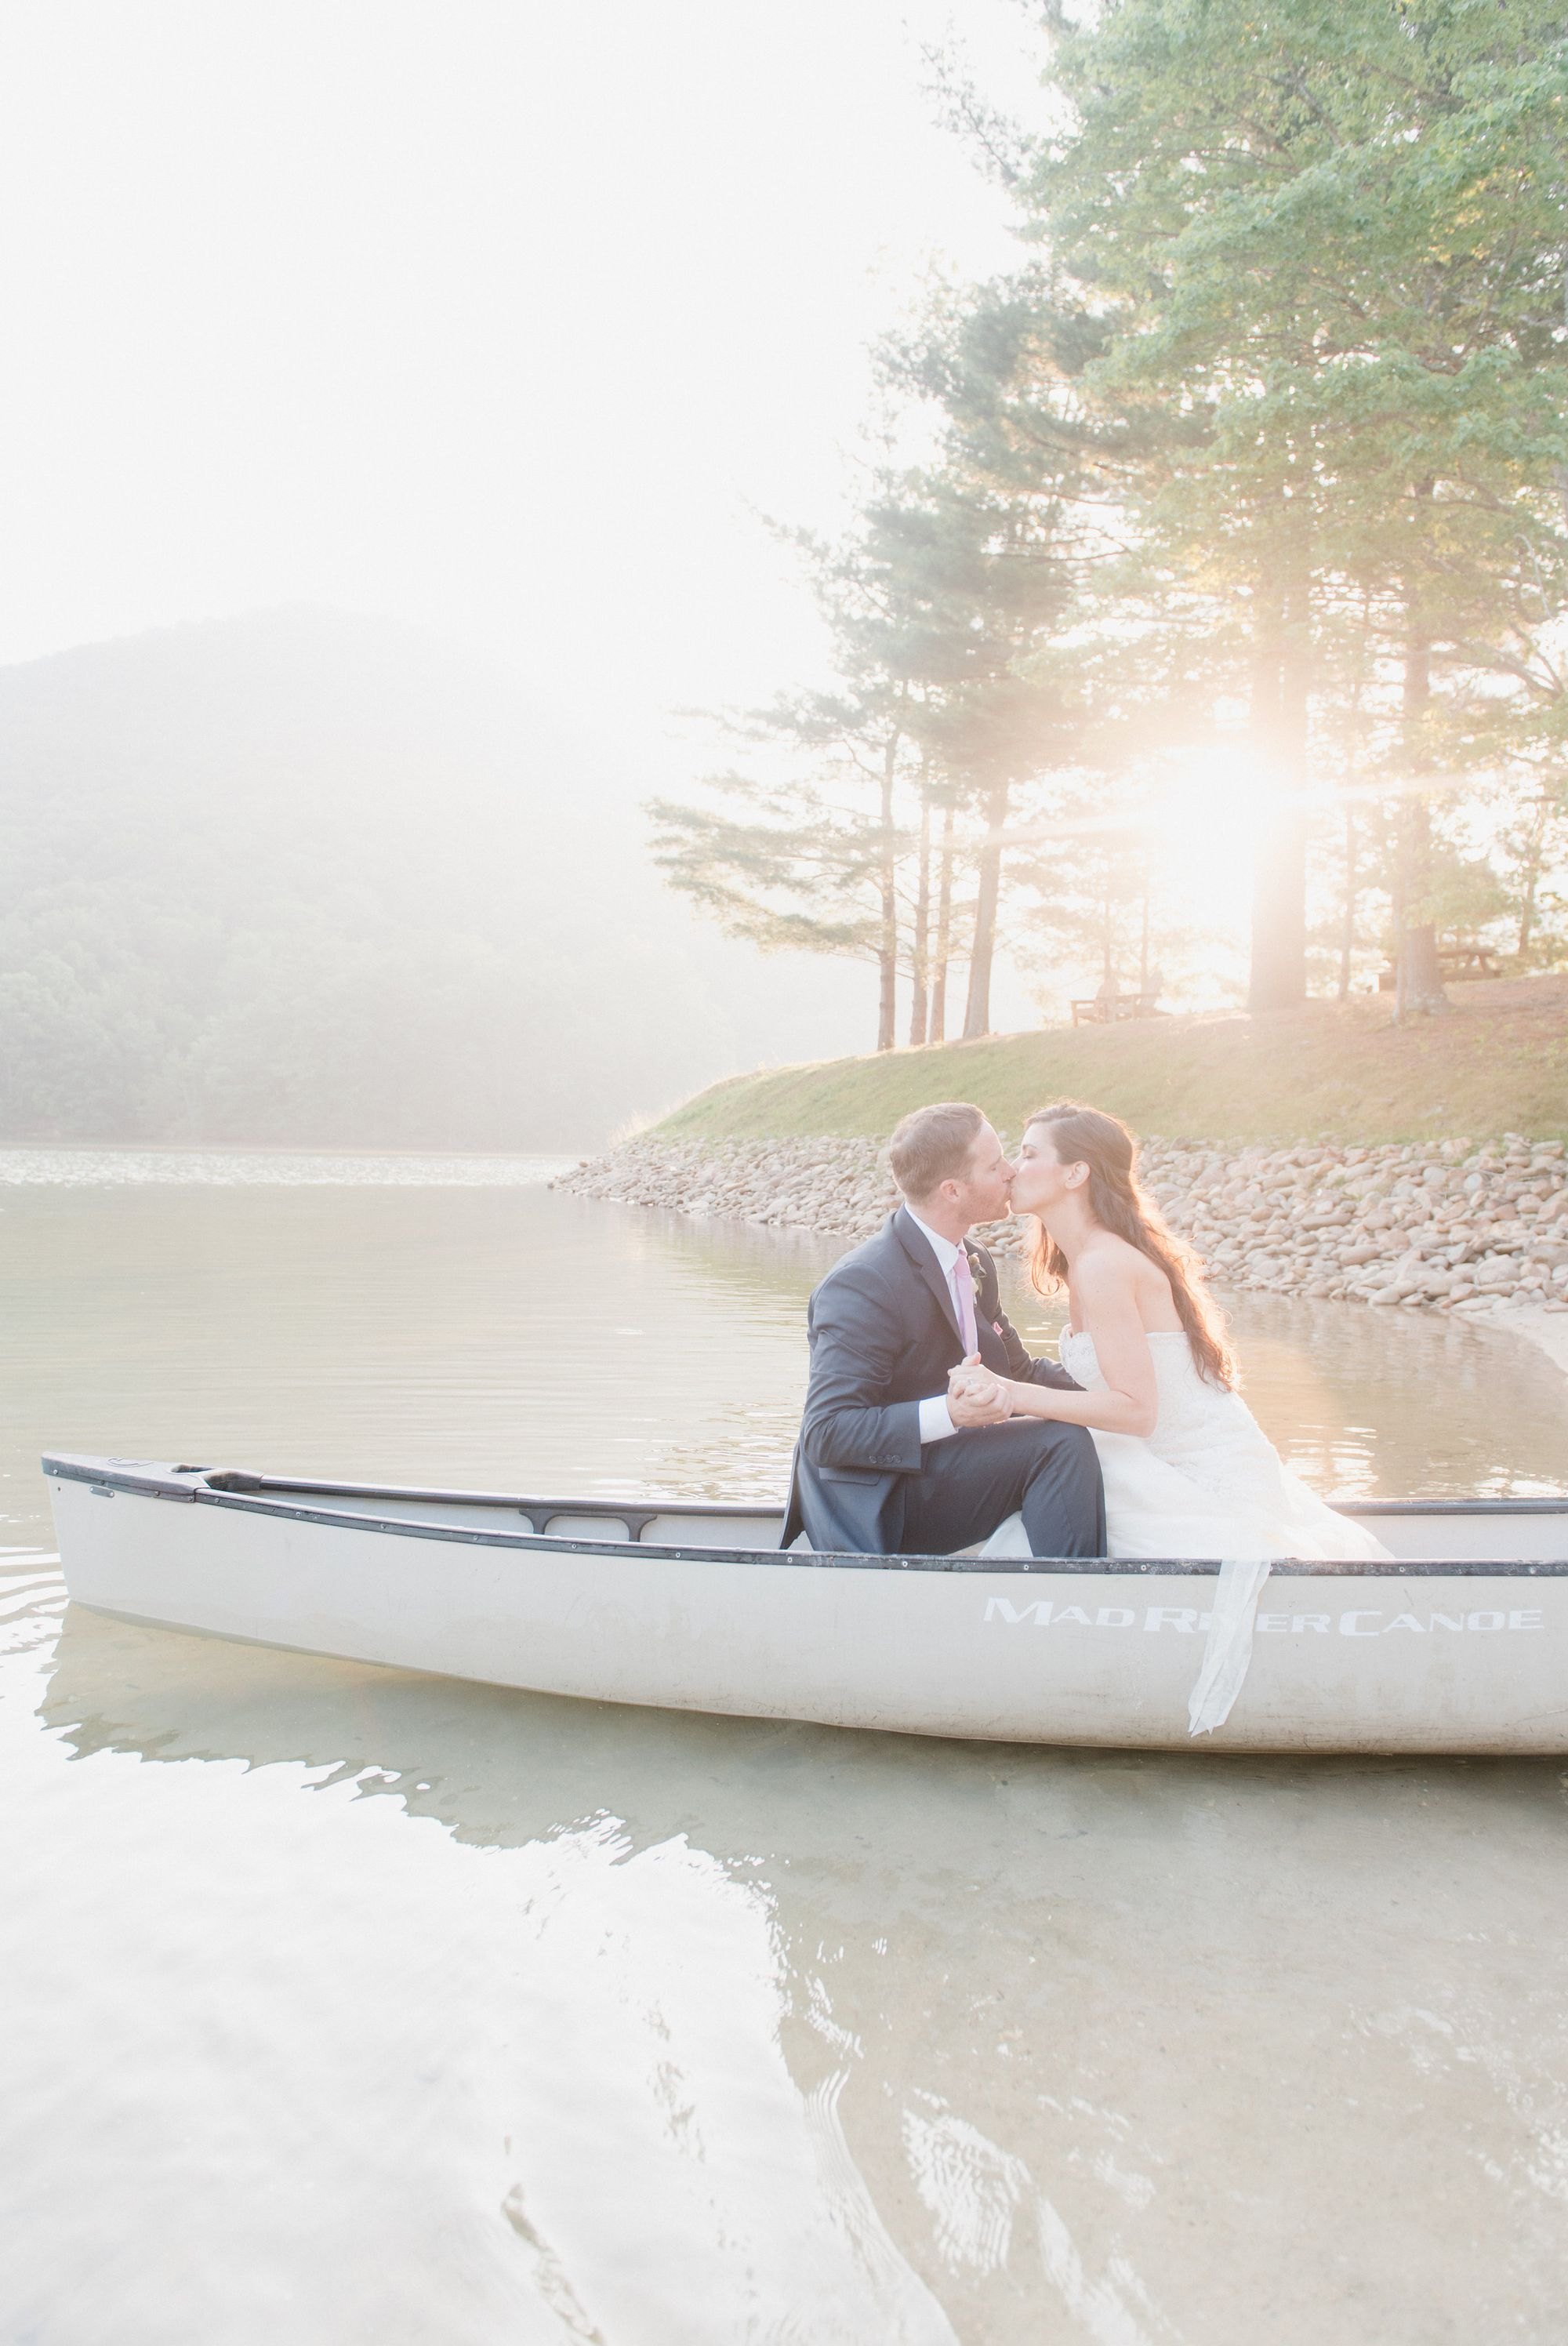 morning-after-wedding-session-in-canoe 26